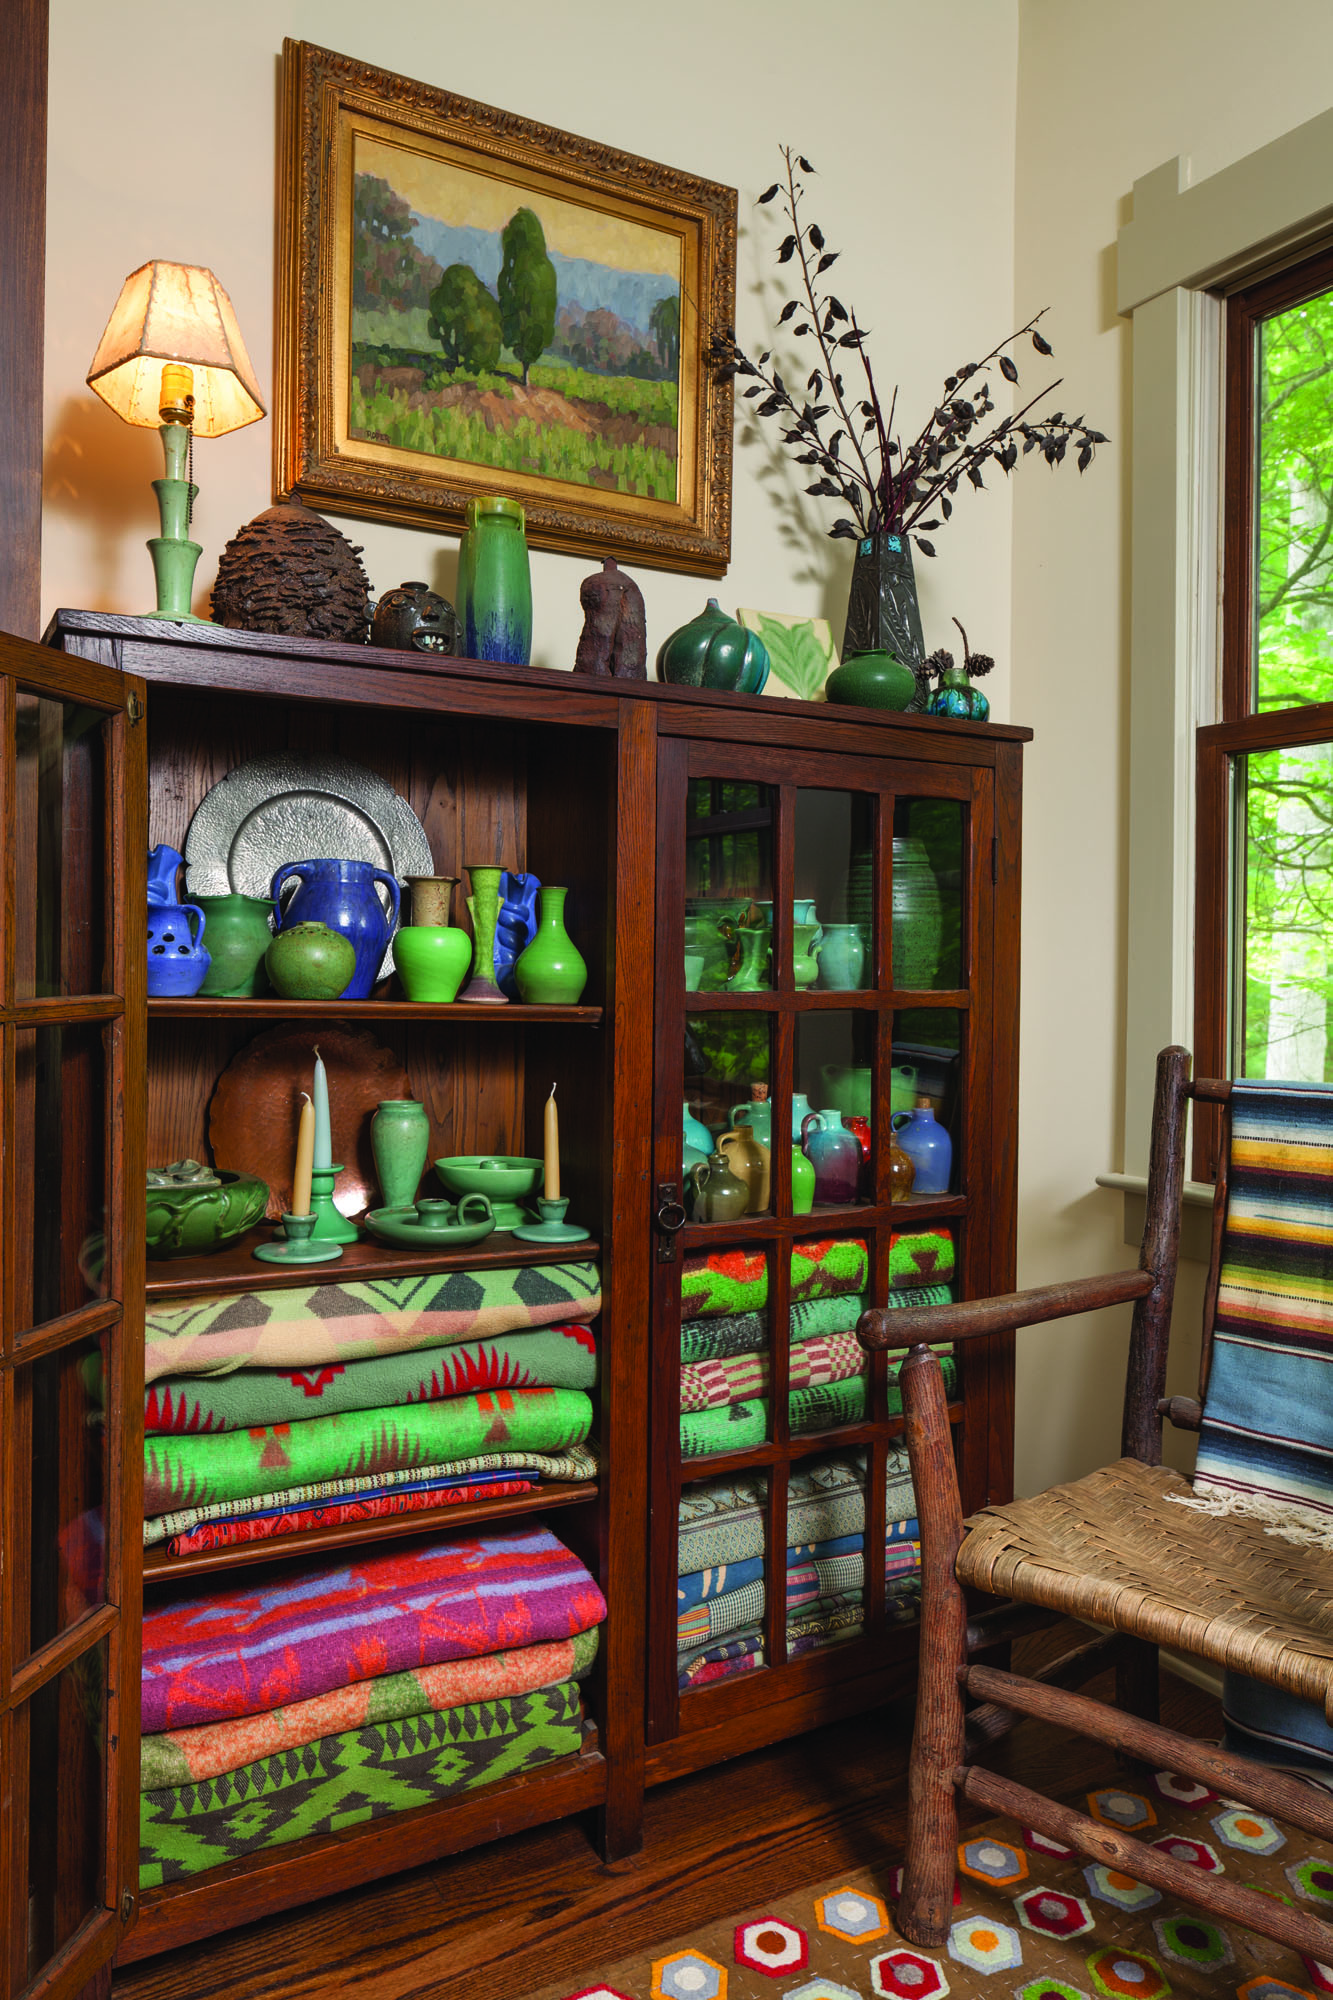 A bookcase in the study displays more of the owners' extensive collection of North Carolina ceramics, along with colorful camp blankets made by local textile mills.